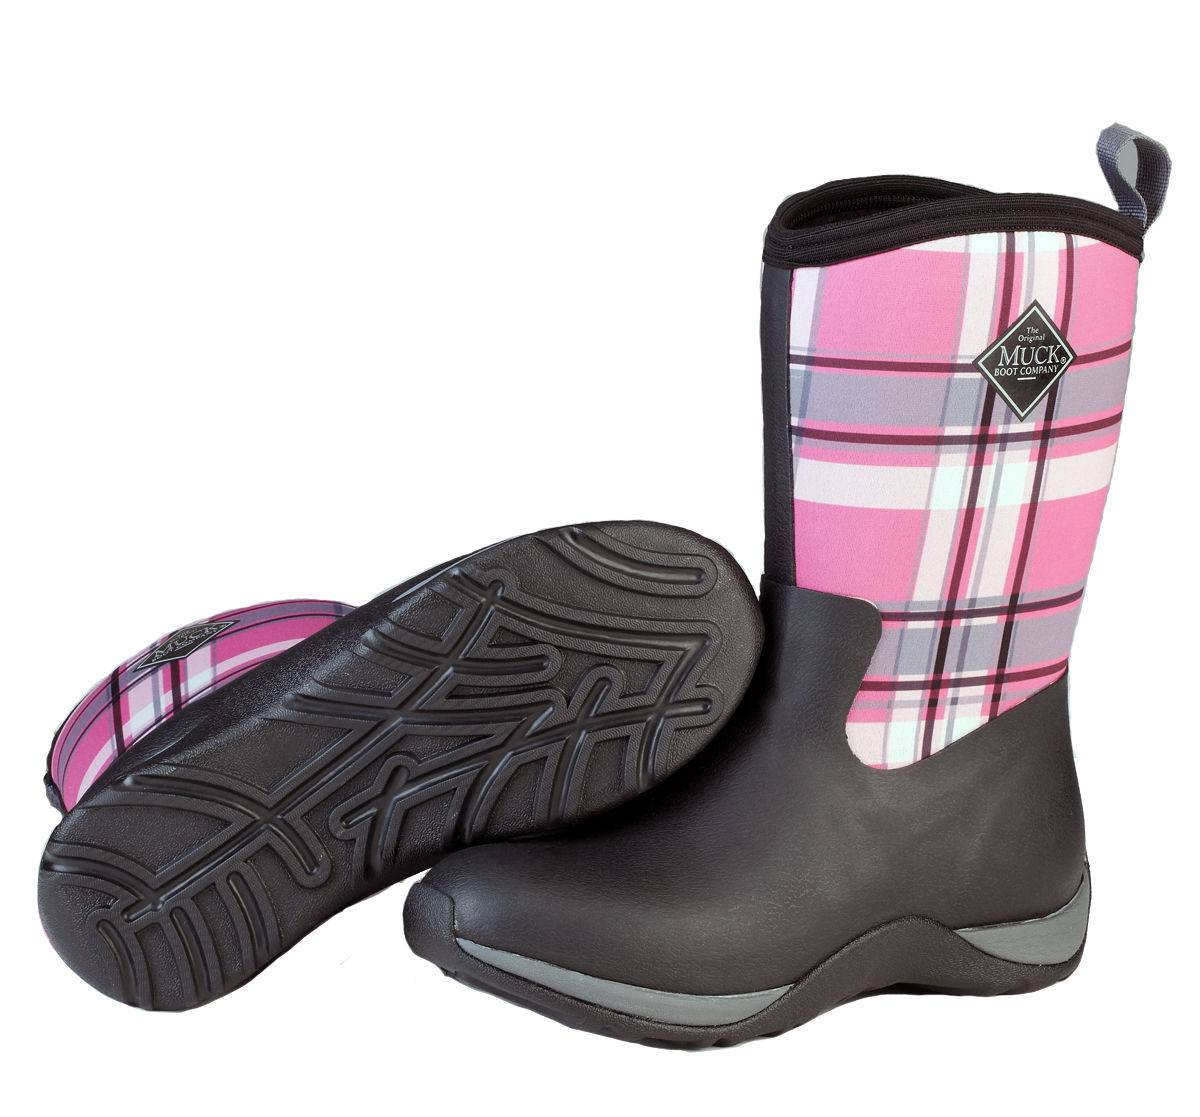 Muck Boots Ladies Arctic Weekend - Black Pink Plaid